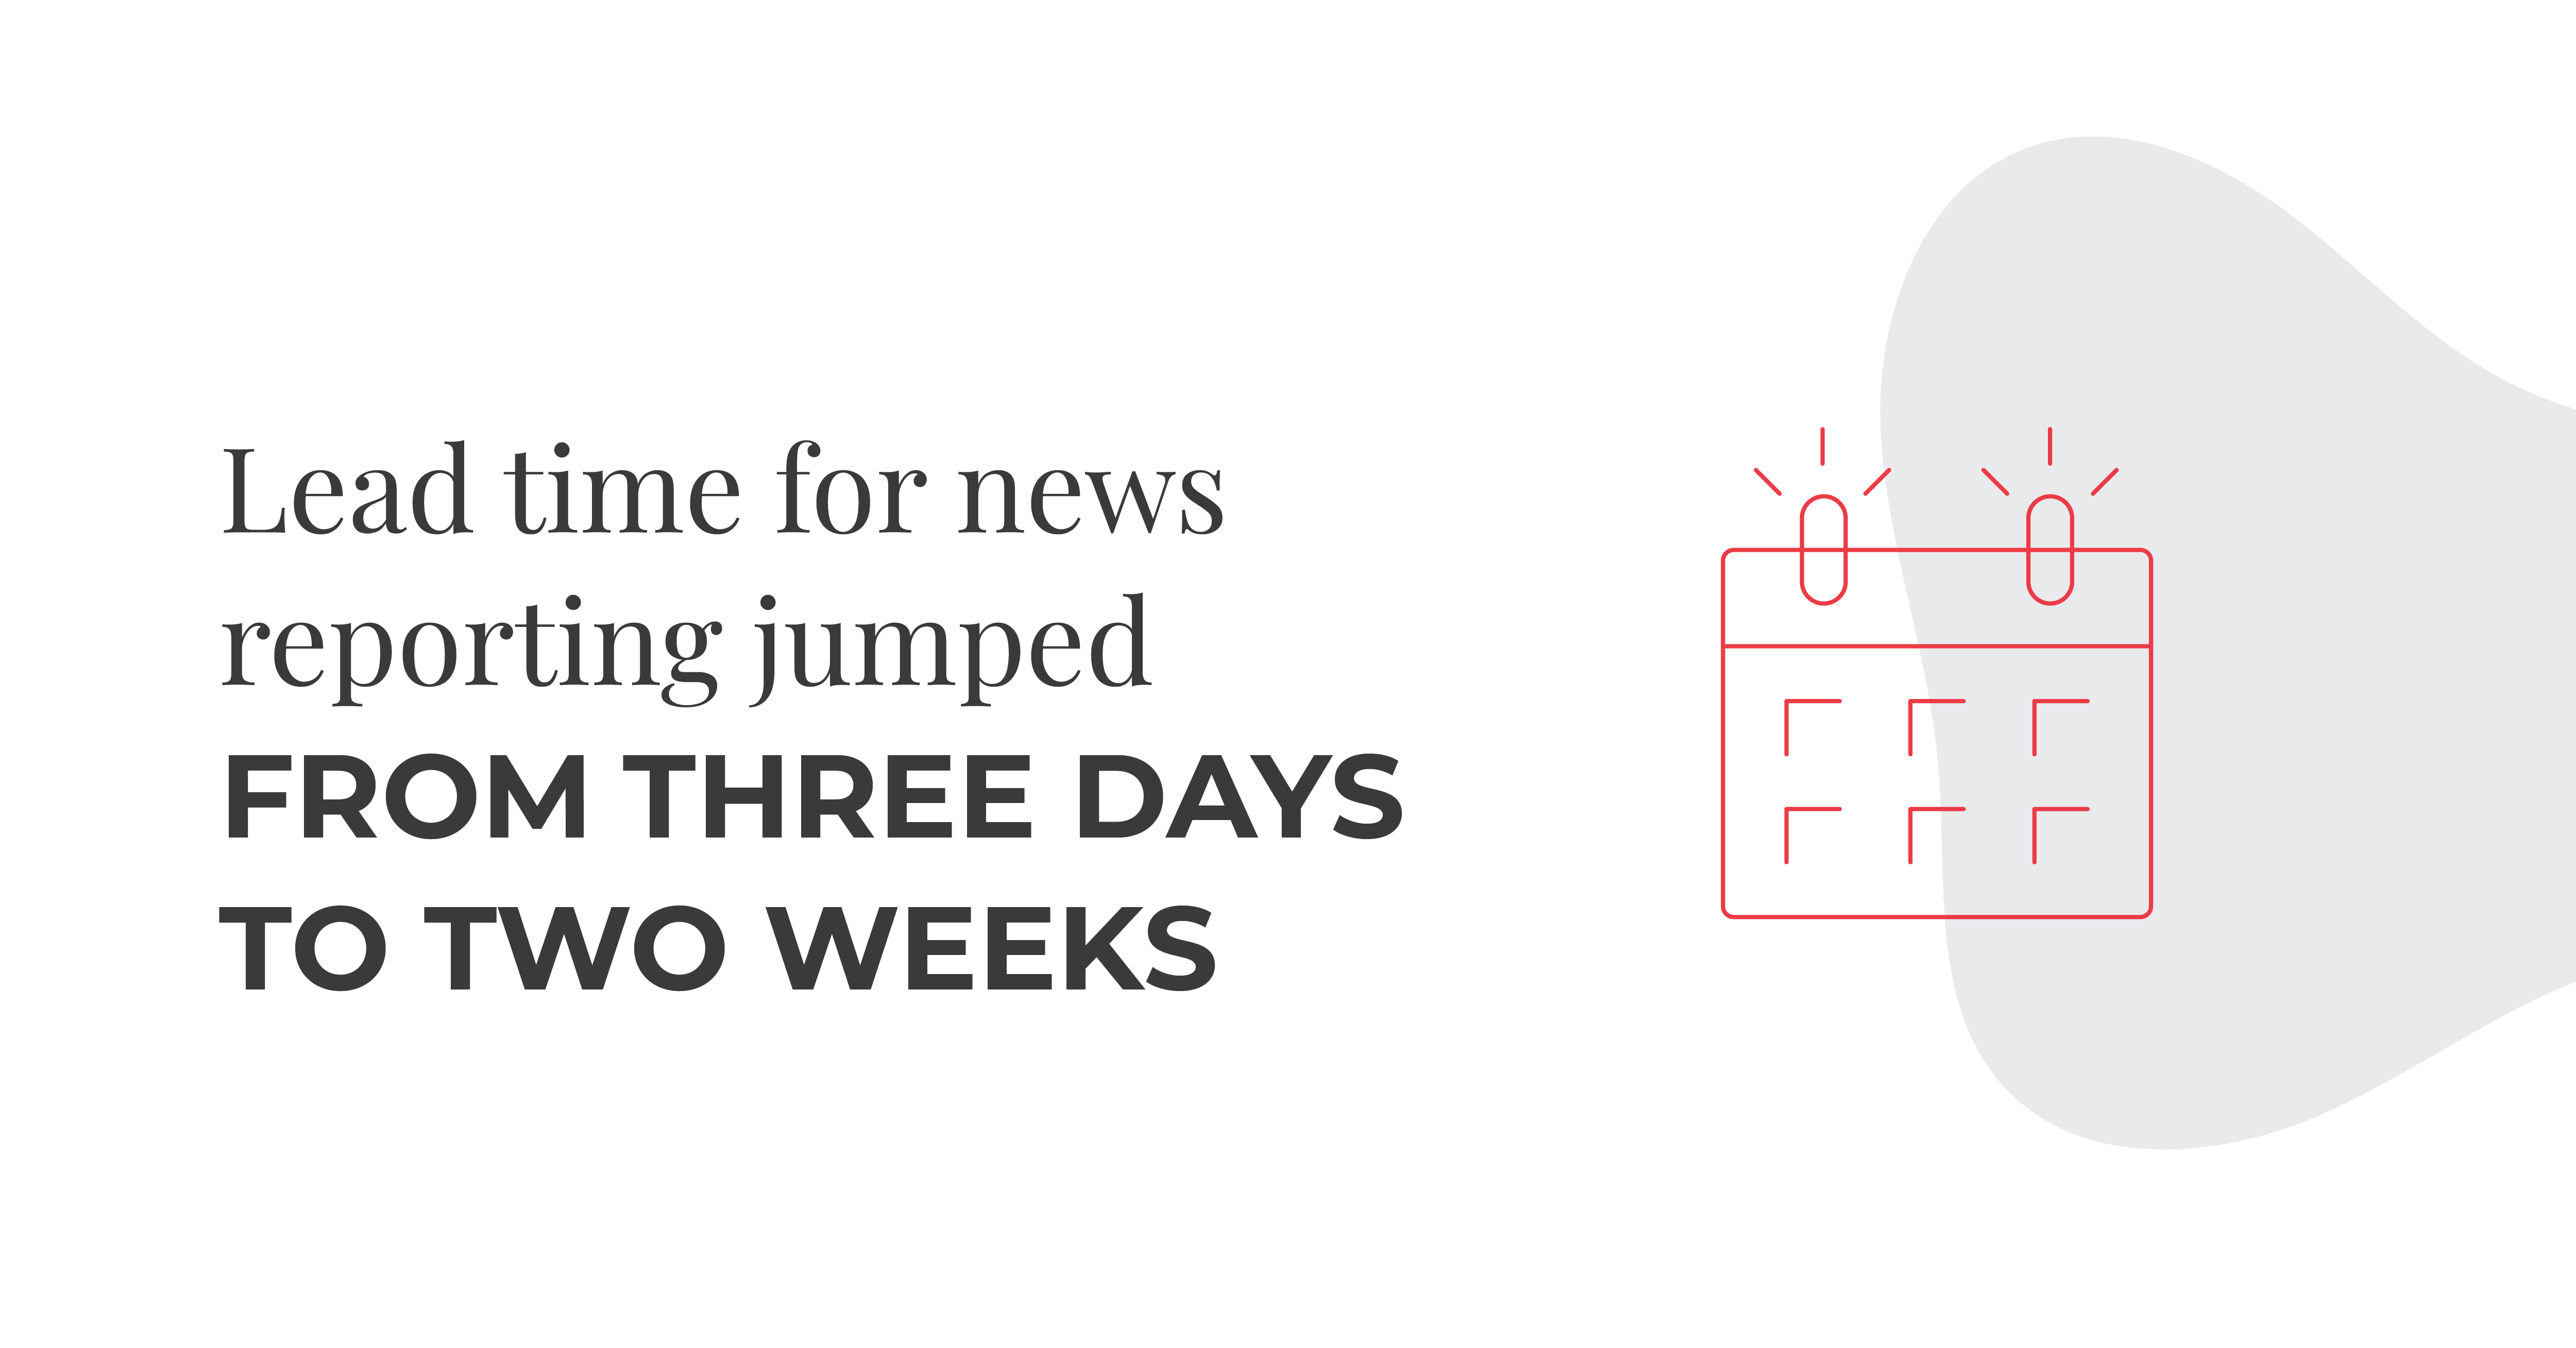 lead time for news reporting jumped from three days to two weeks